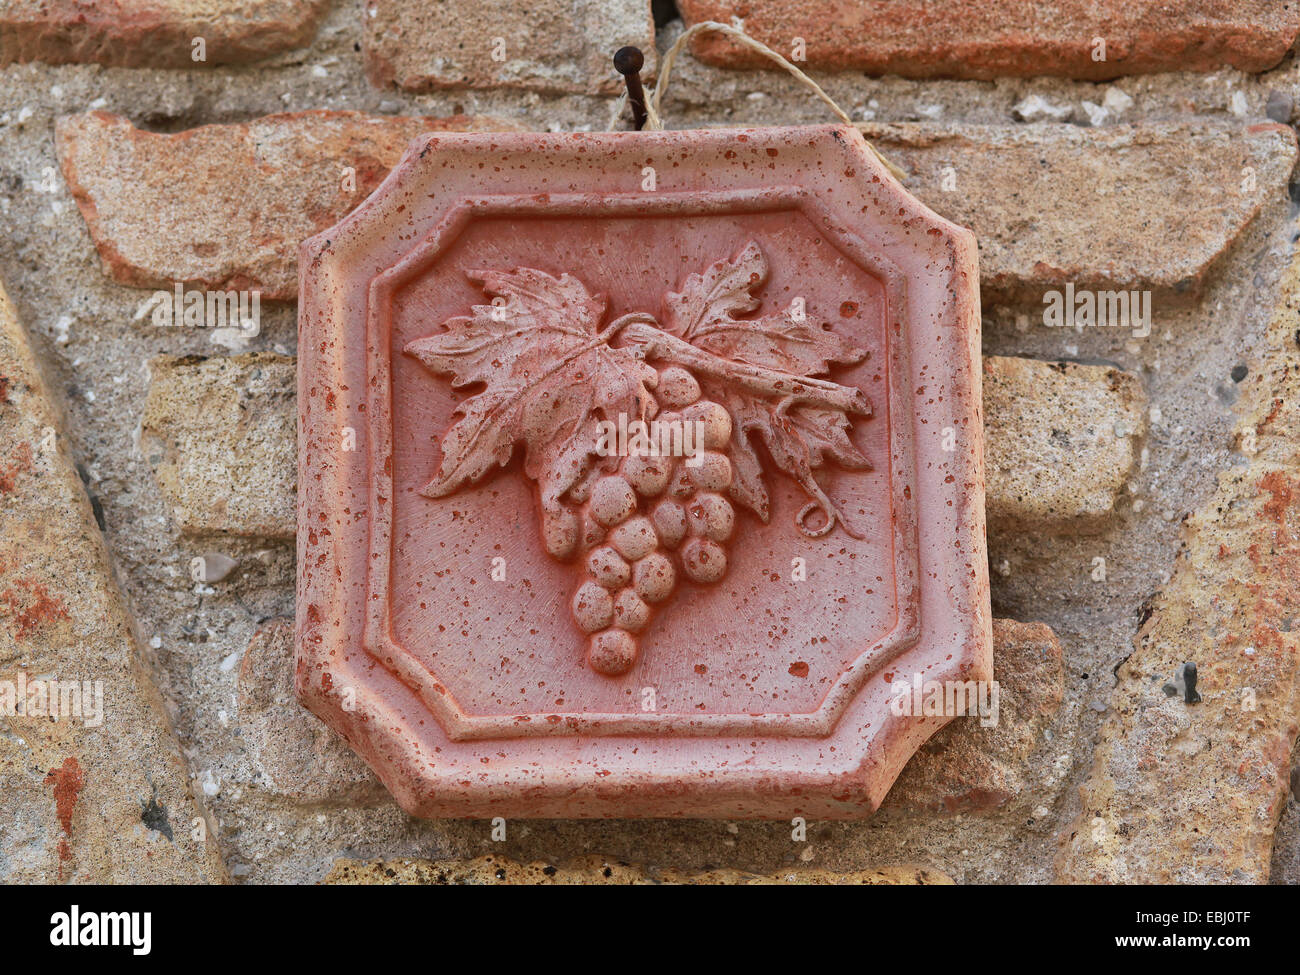 Decorative ceramic tile with grape vine fixed on a brick wall decorative ceramic tile with grape vine fixed on a brick wall outside a wine bar shop in italy europe dailygadgetfo Gallery